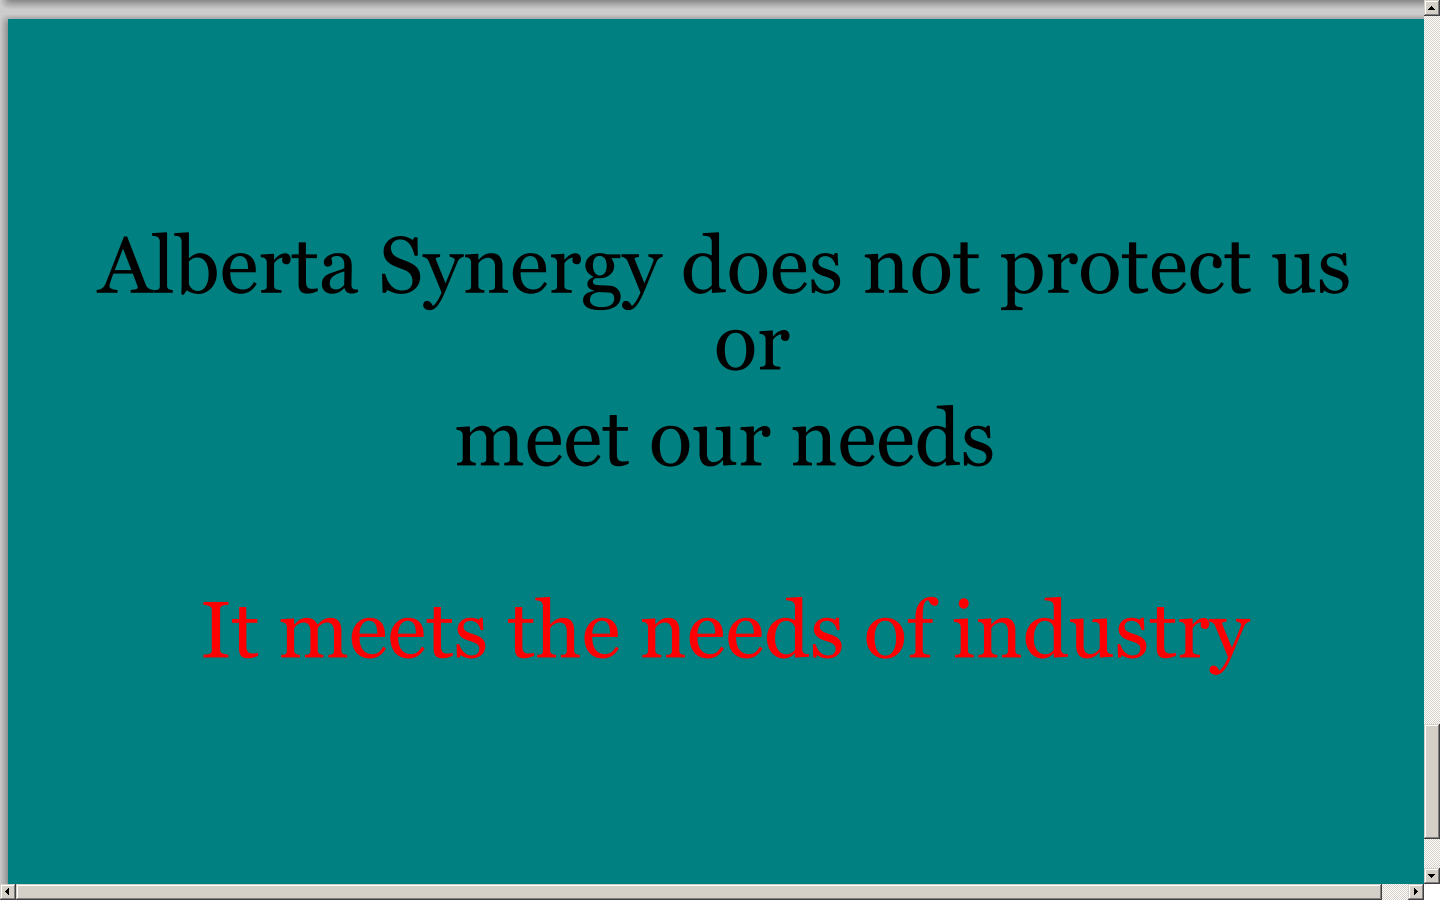 Alberta Synergy protects only industry